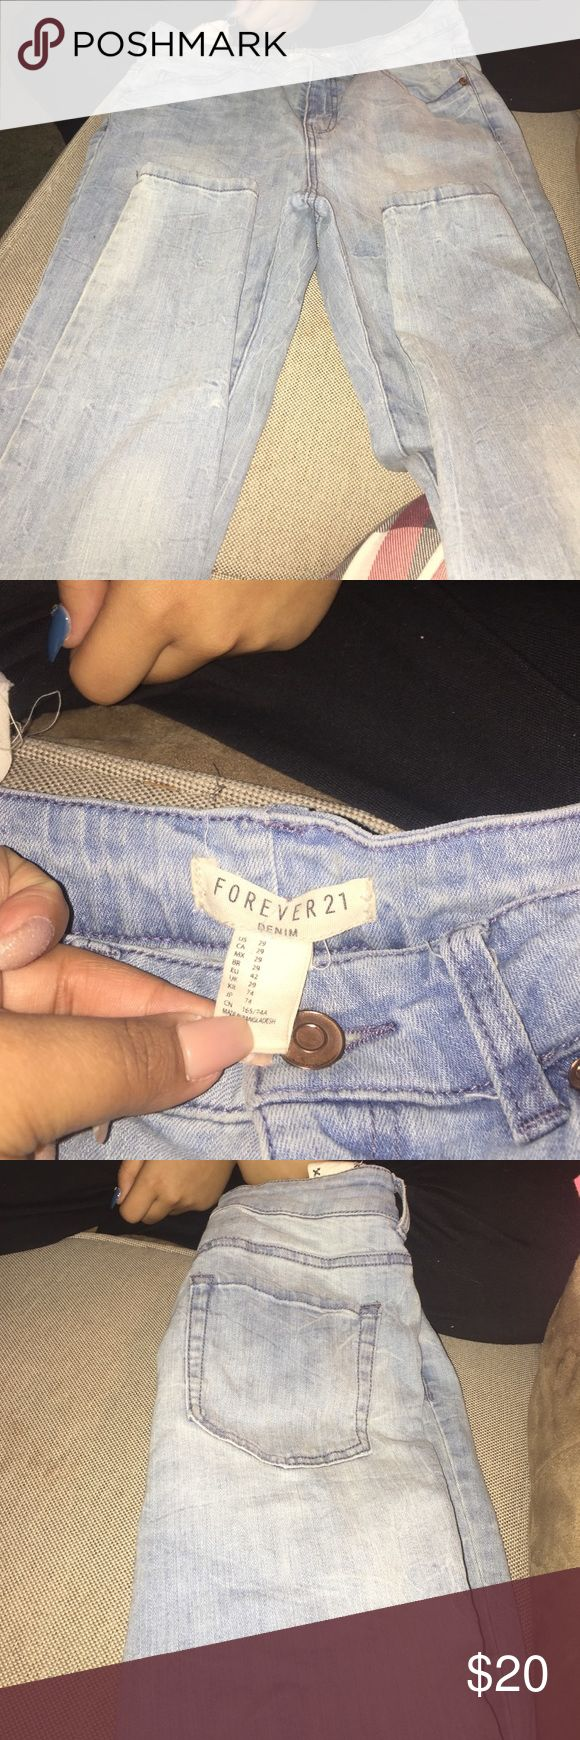 Light blue skinny jeans Light blue skinny jeans, worn several times, great condition, the only wear and tear is on the tag as show in the picture Jeans Skinny